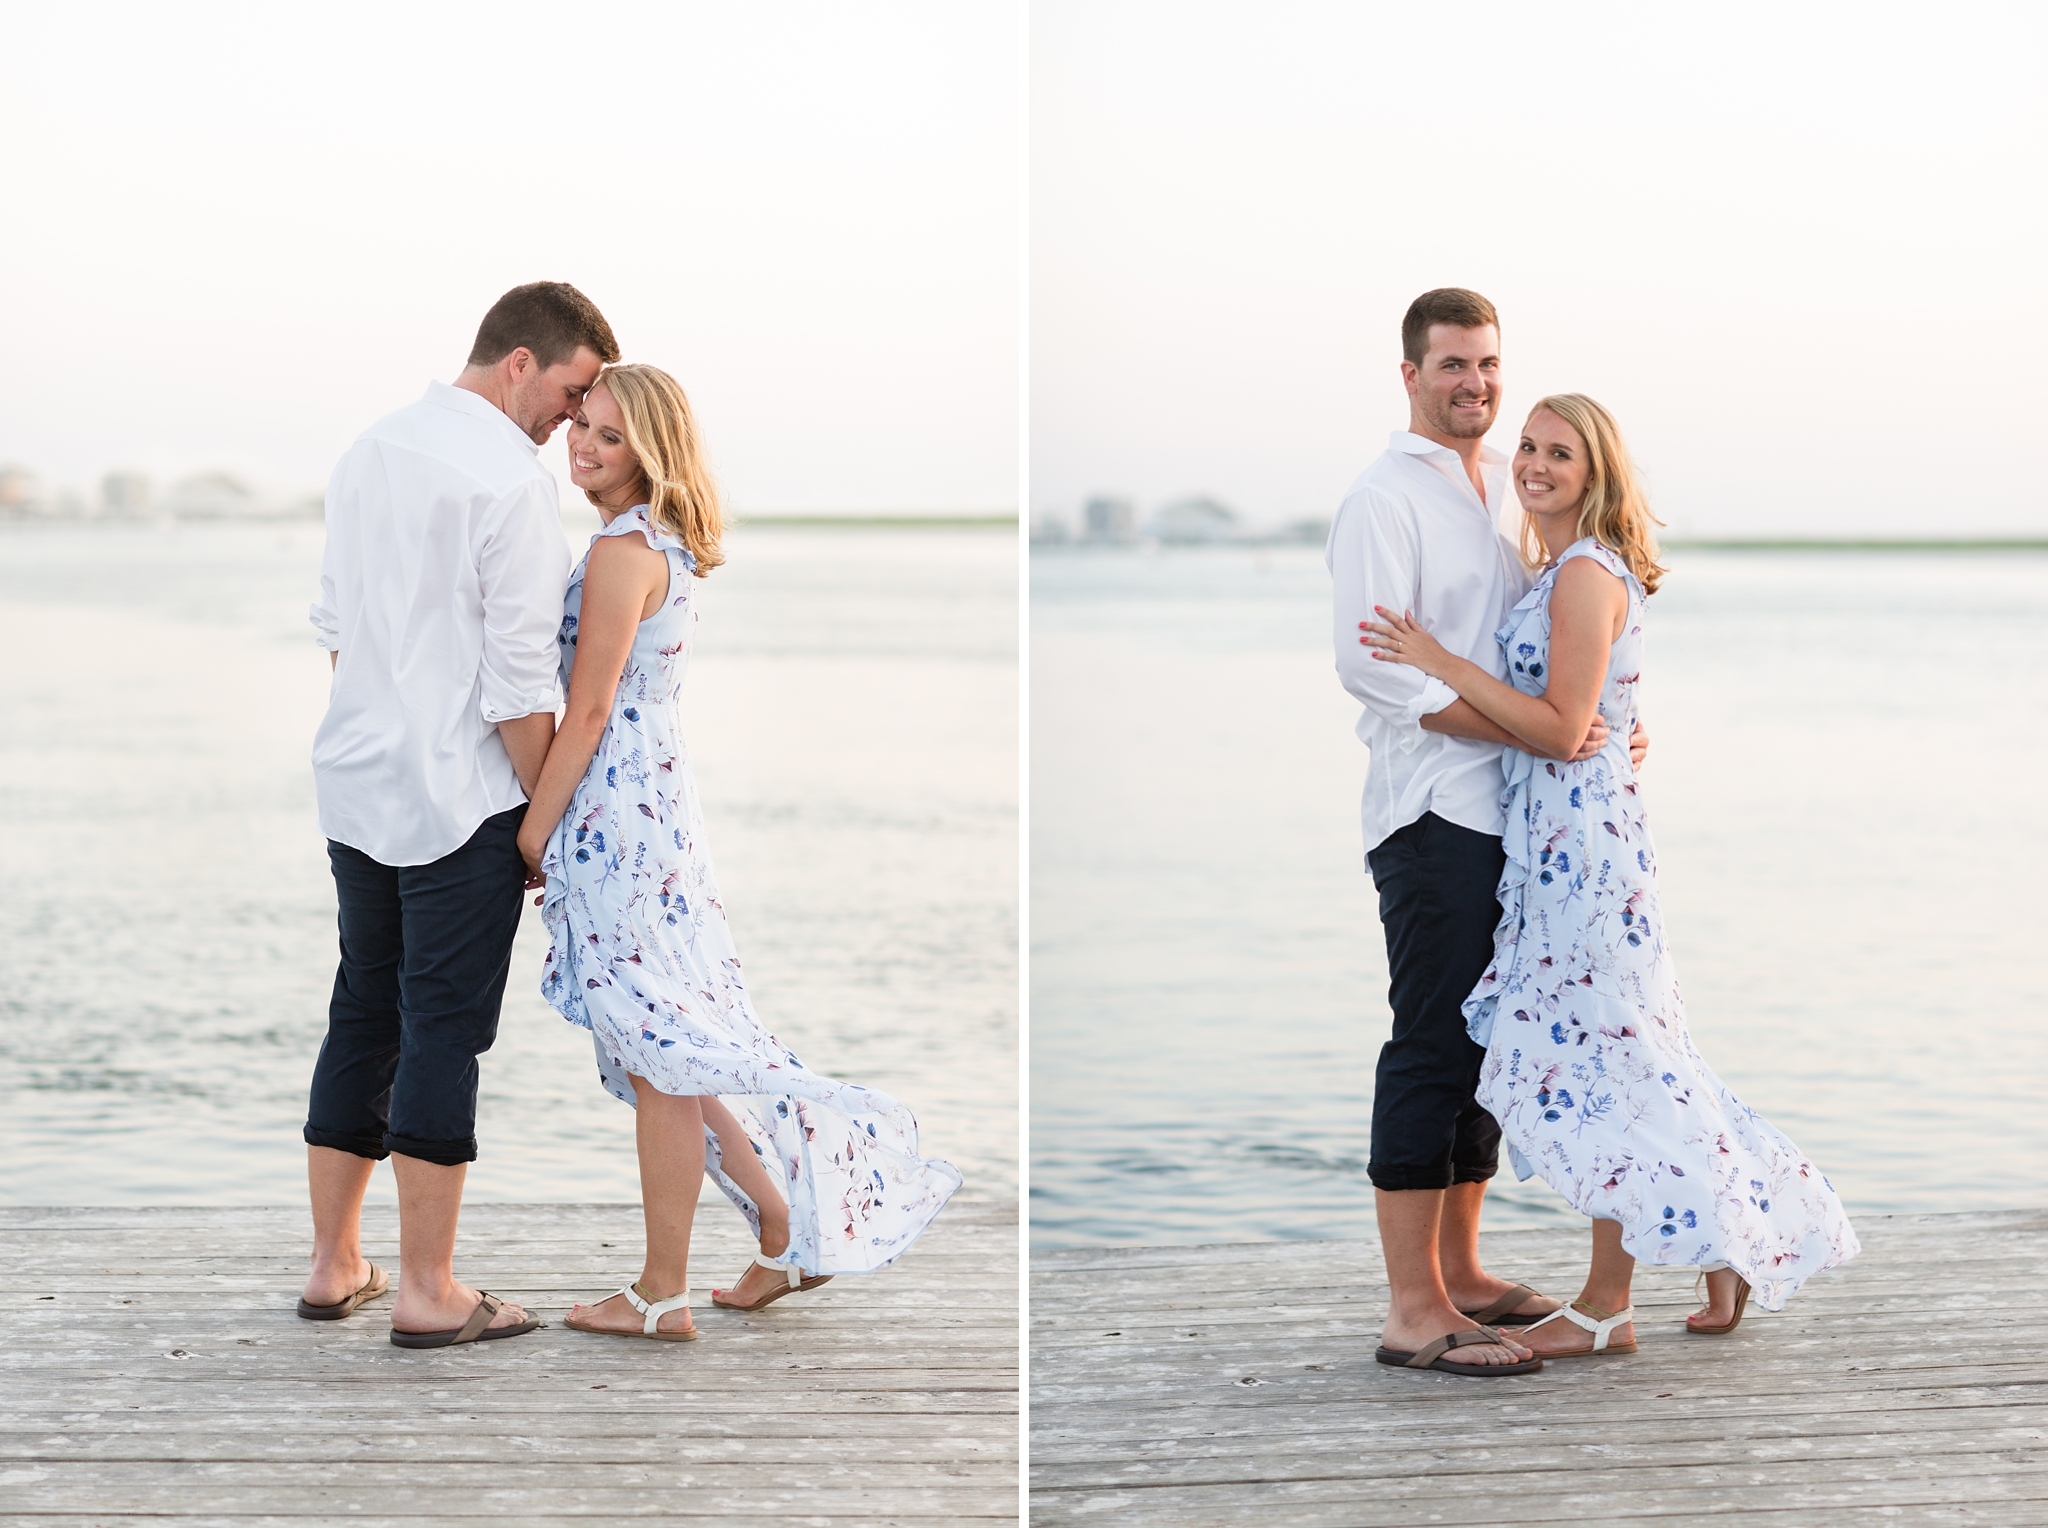 Sea_Isle_City_NJ_Beach_Engagement_Session_13.jpg